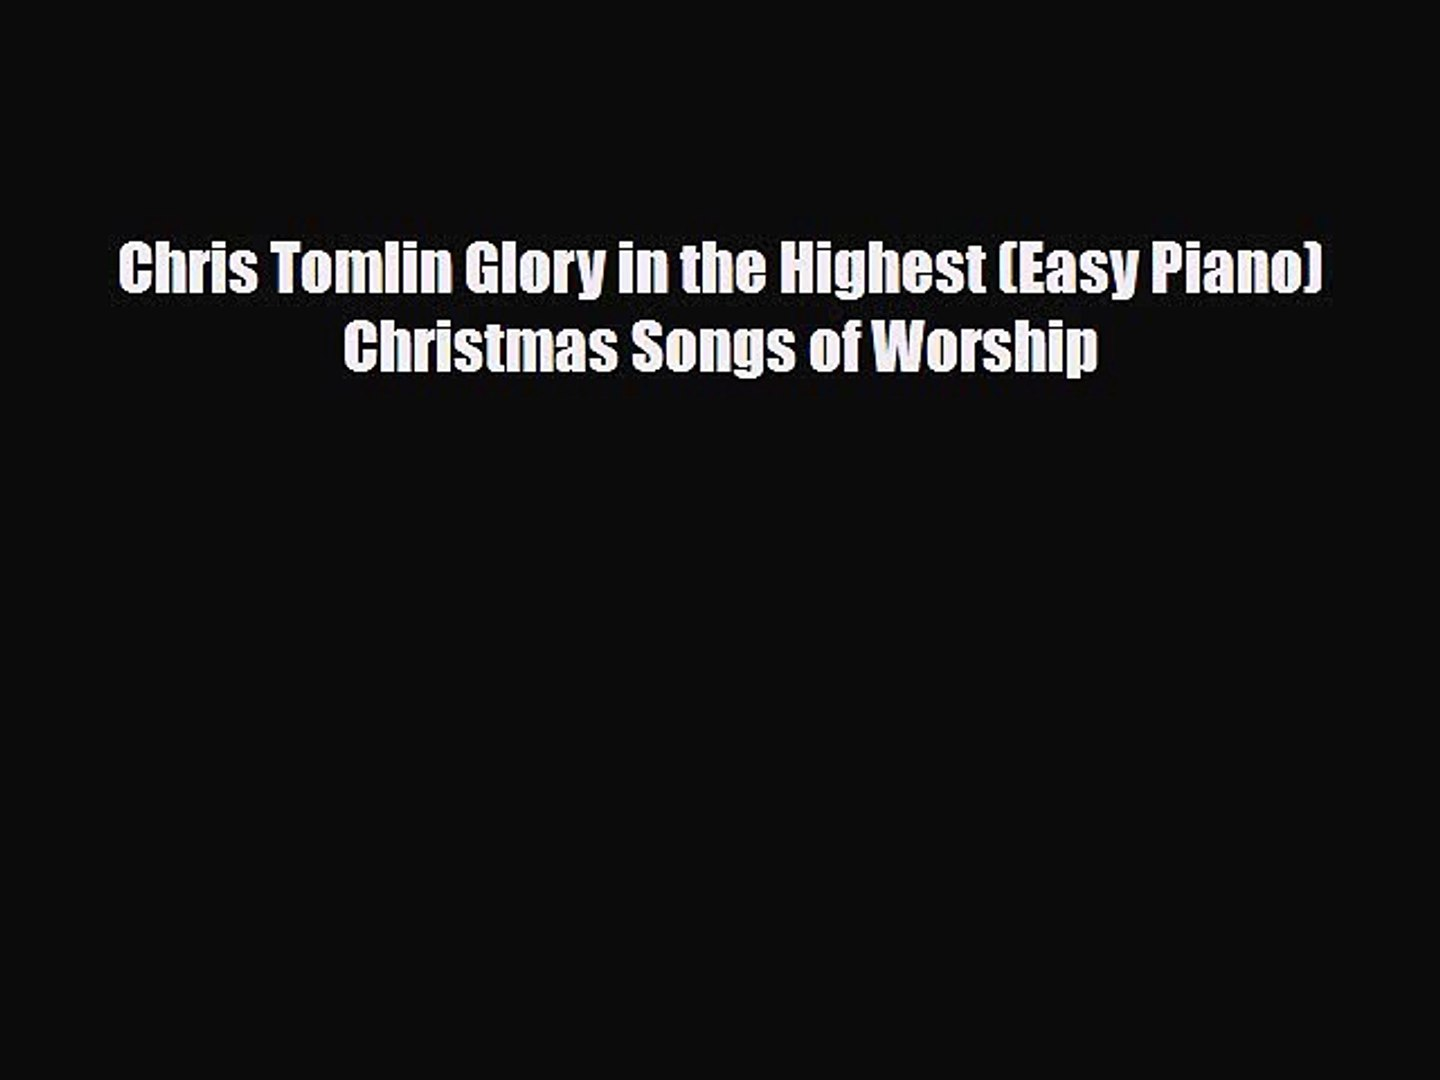 Chris Tomlin Christmas.Pdf Chris Tomlin Glory In The Highest Easy Piano Christmas Songs Of Worship Ebook